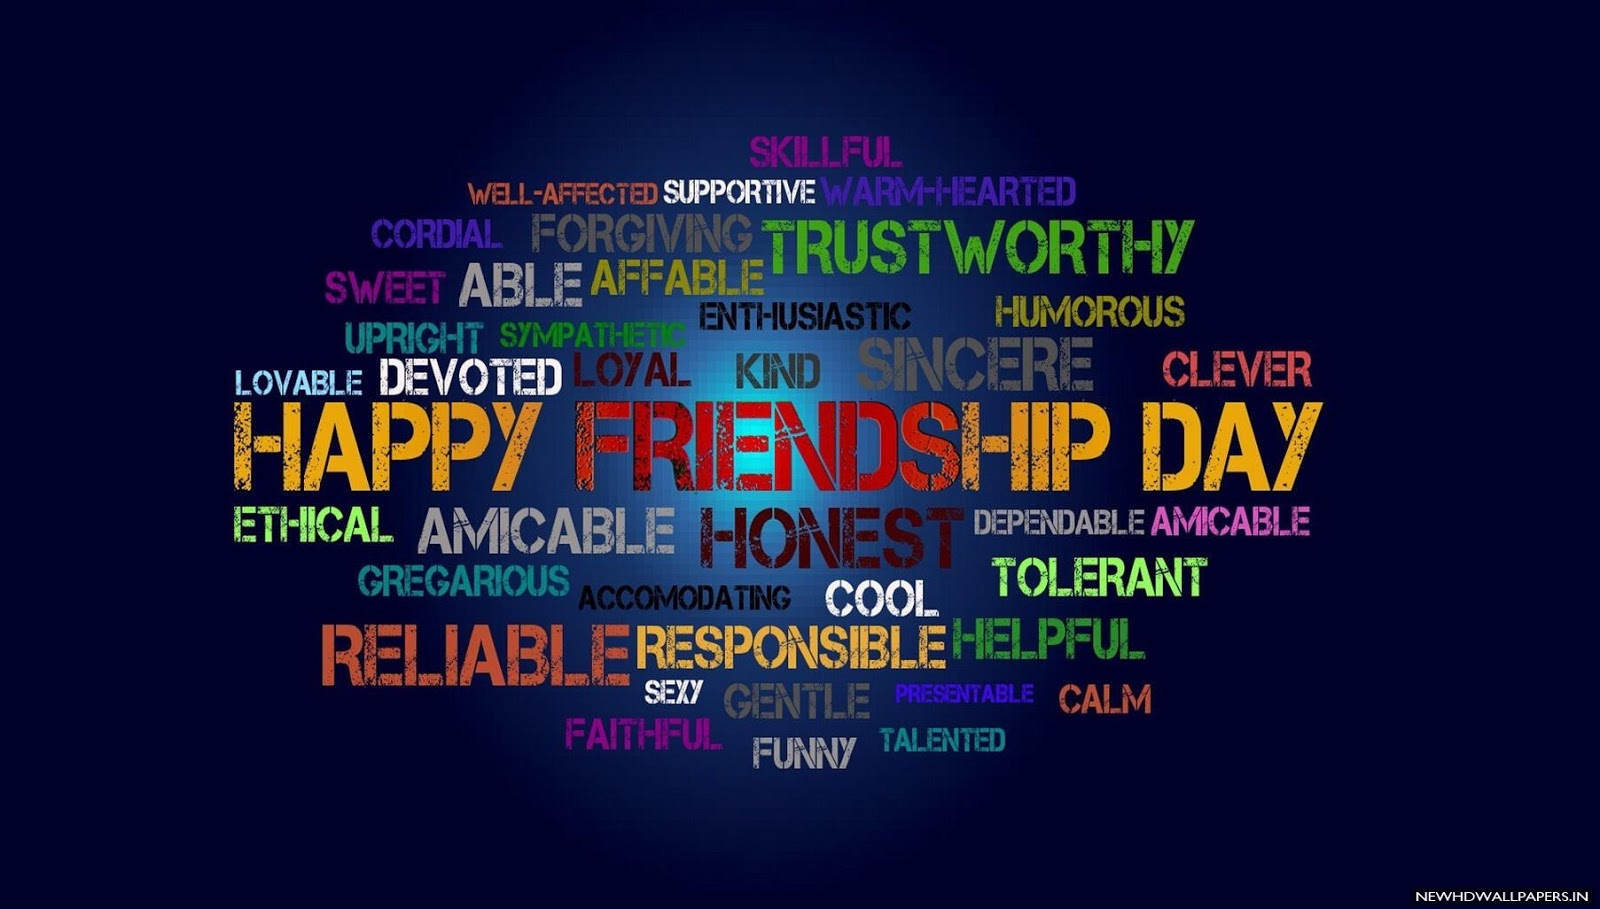 New Quotes About Friendship Friendship Day Images And Quotes For Facebook  Friendship